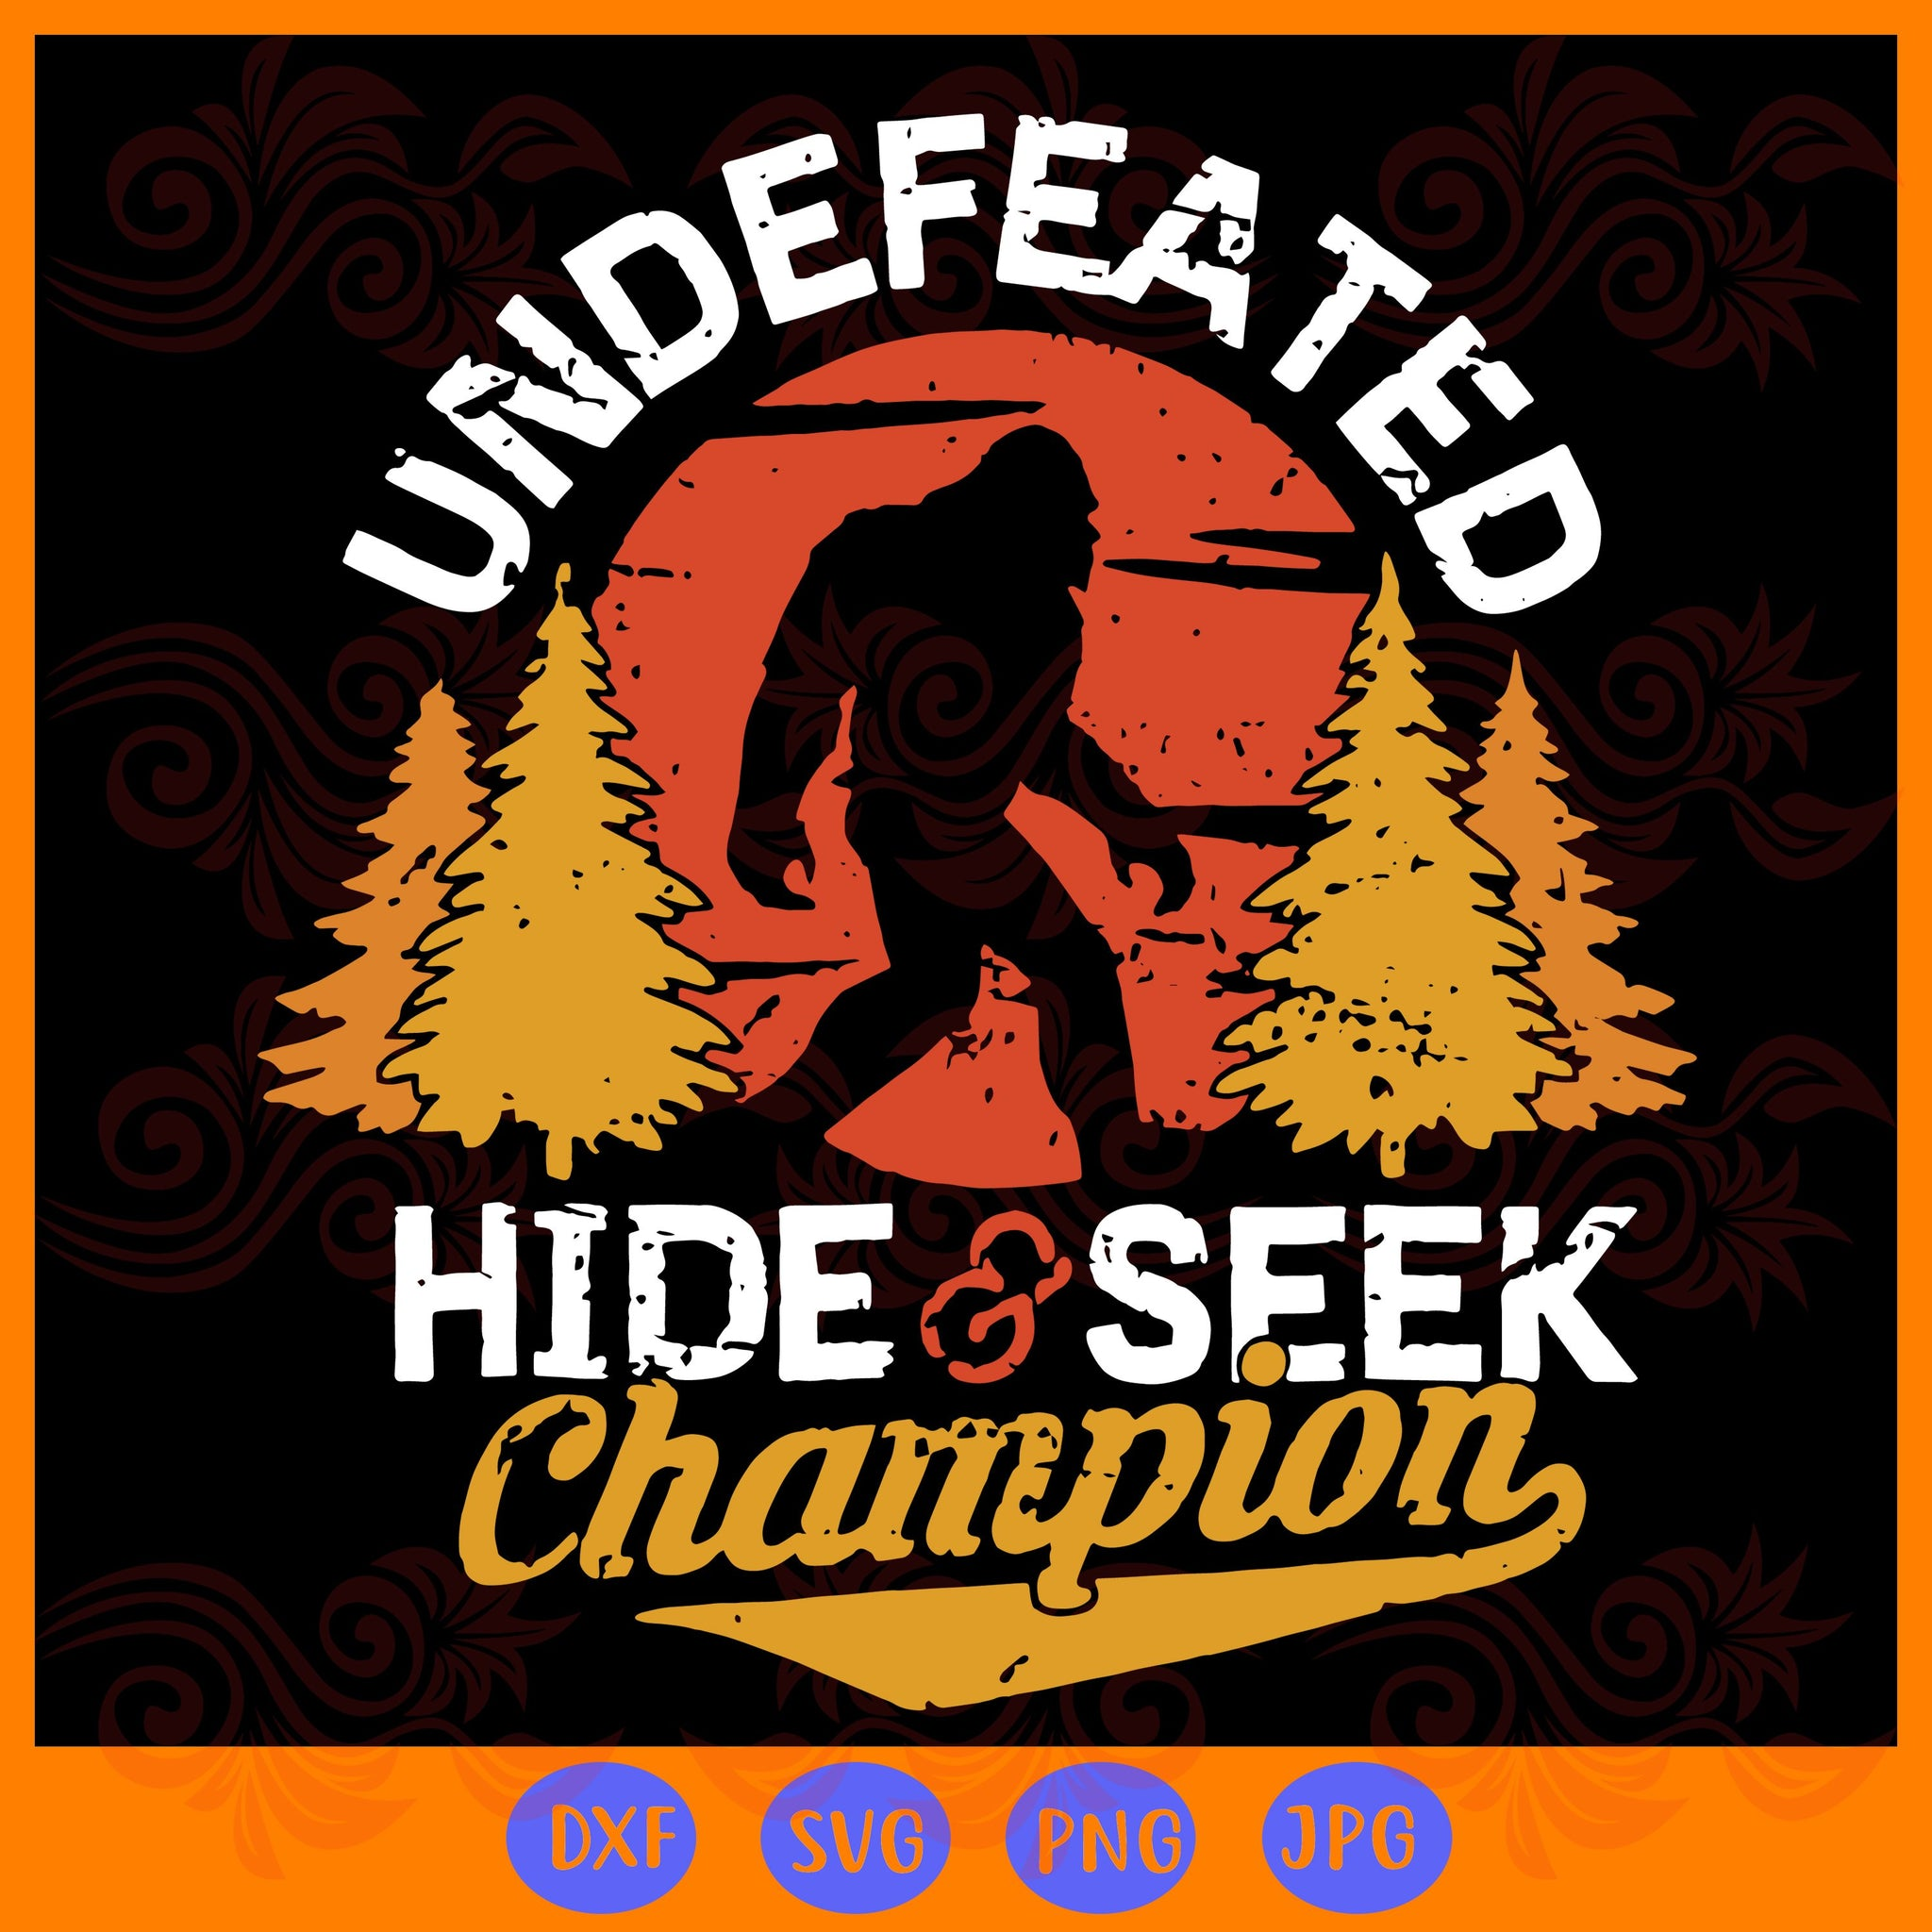 Undefeated hide & seek champion svg, bigfoot svg, bigfoot hike svg, bigfoot shirt, bigfoot lover gift, bigfoot svg, hide and seek, undefeated bigfoot,trending svg, Files For Silhouette, Files For Cricut, SVG, DXF, EPS, PNG, Instant Download